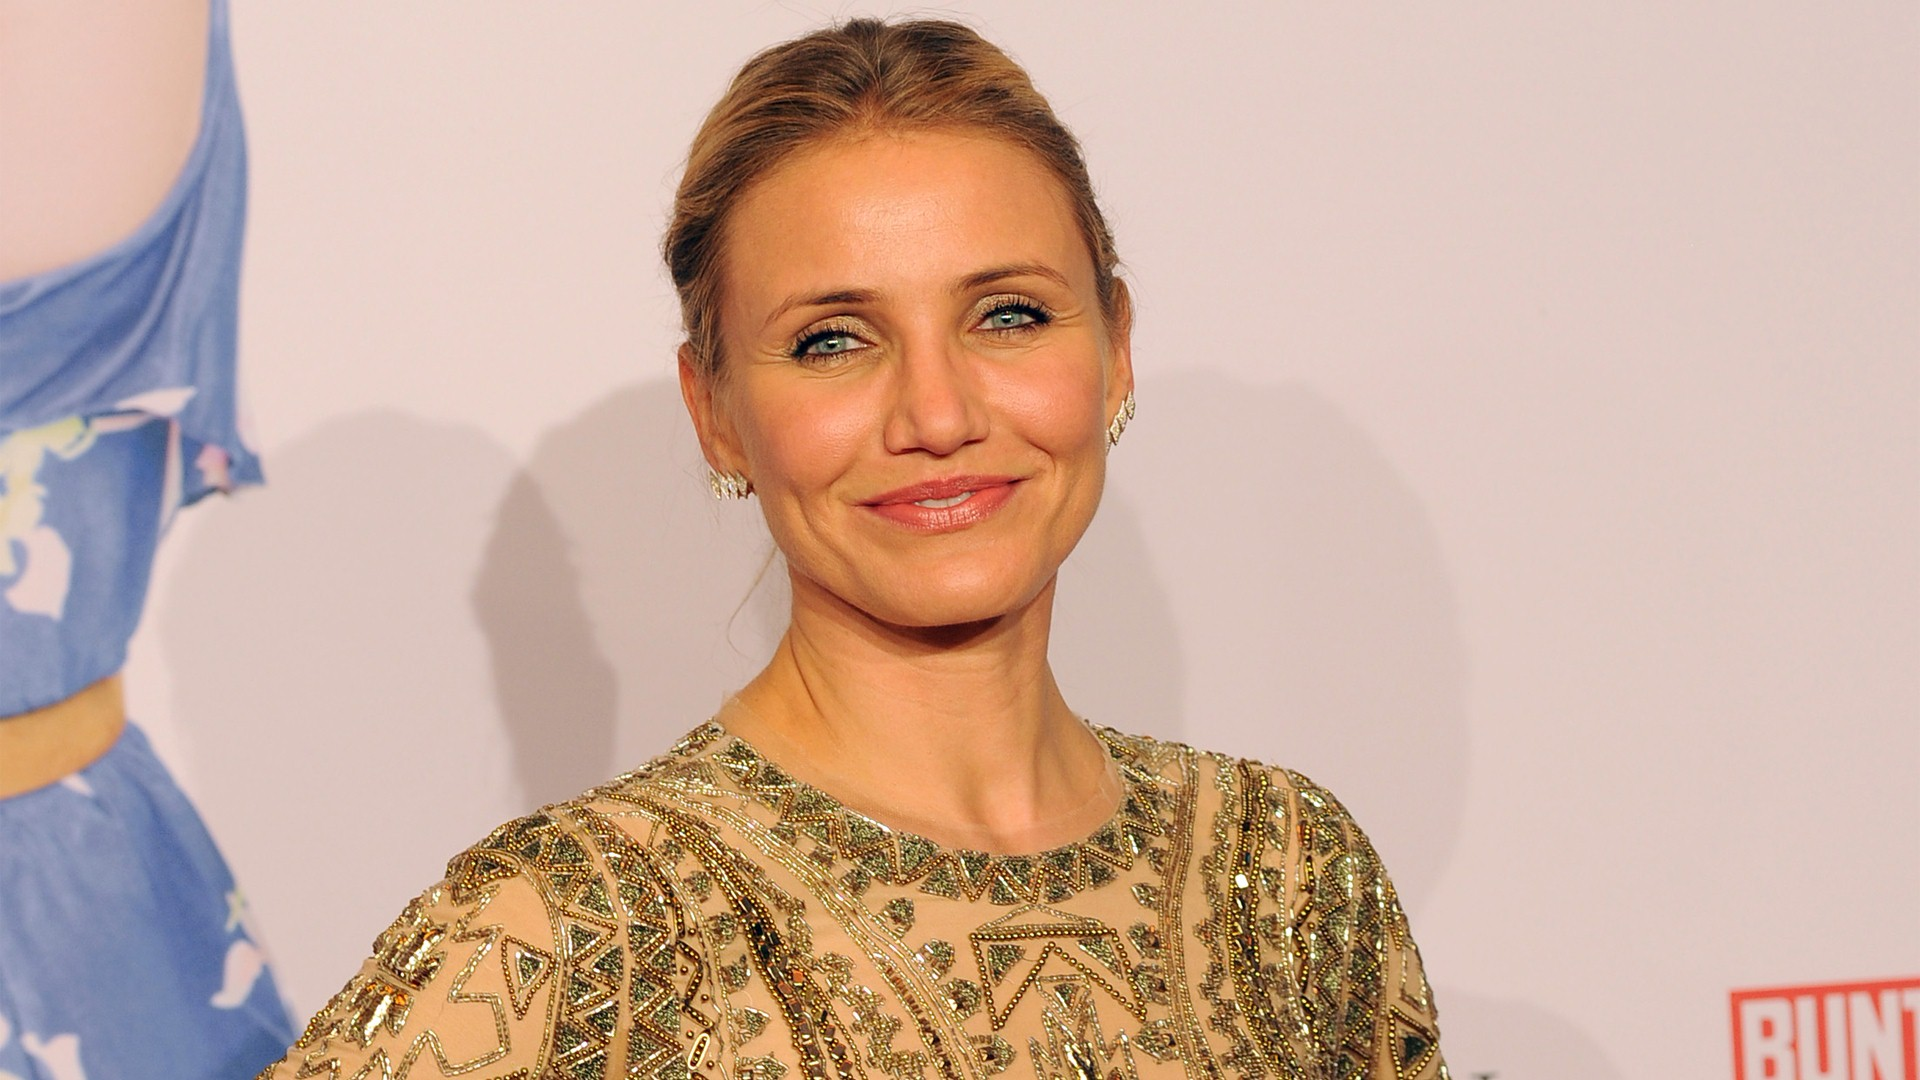 Beautiful Cameron Diaz Actress HD Wallpapers 1920x1080